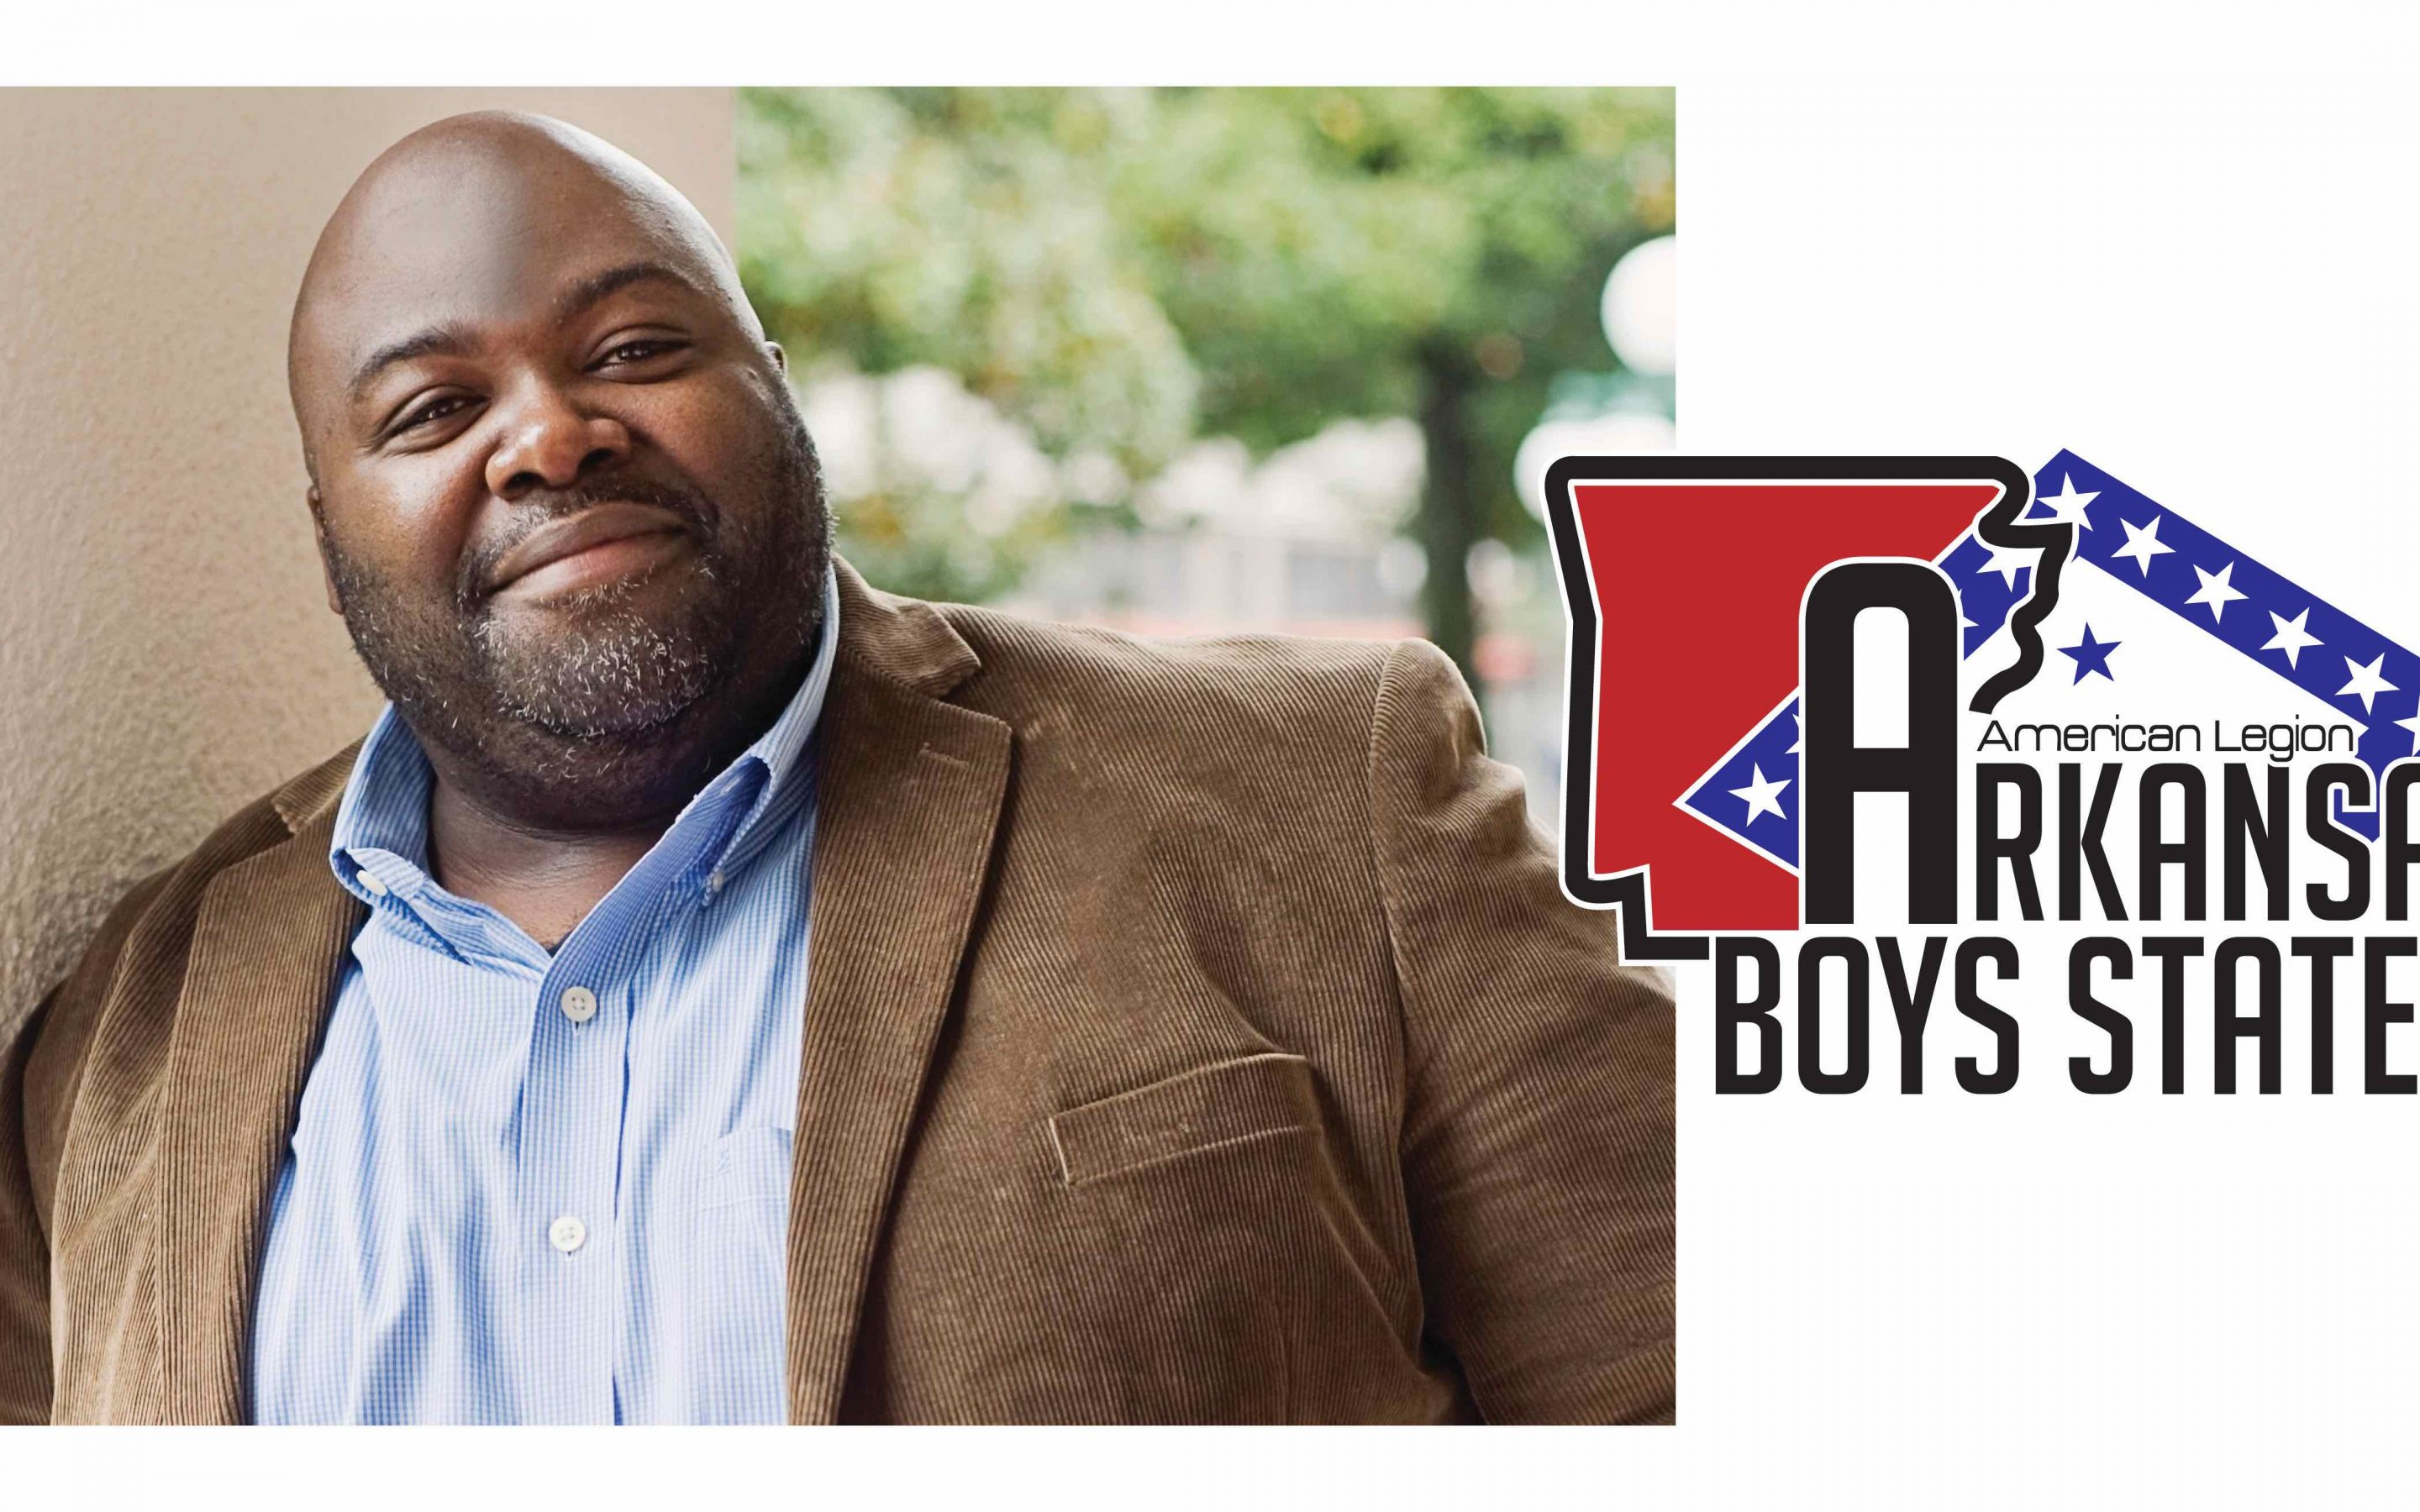 Jackson named Arkansas Boys State director